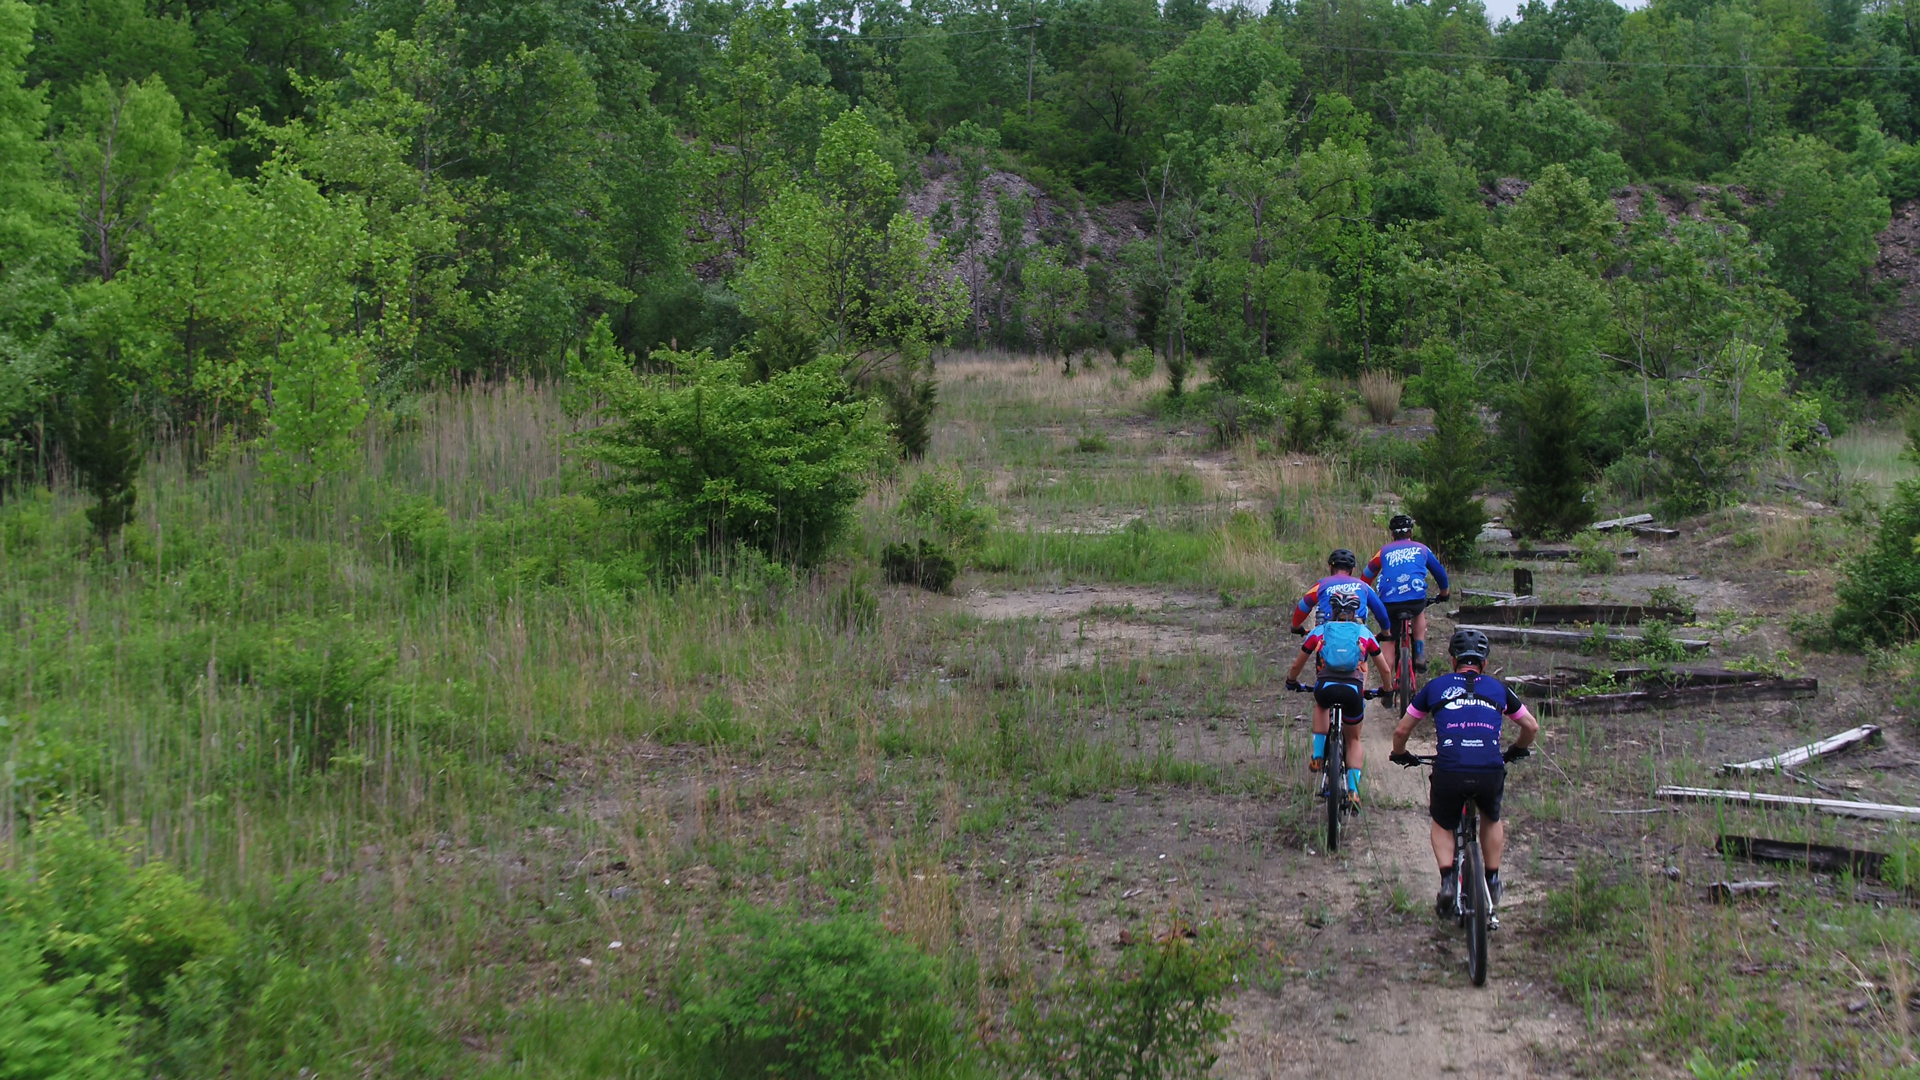 Bikers at Quarry Trails Metro Park.